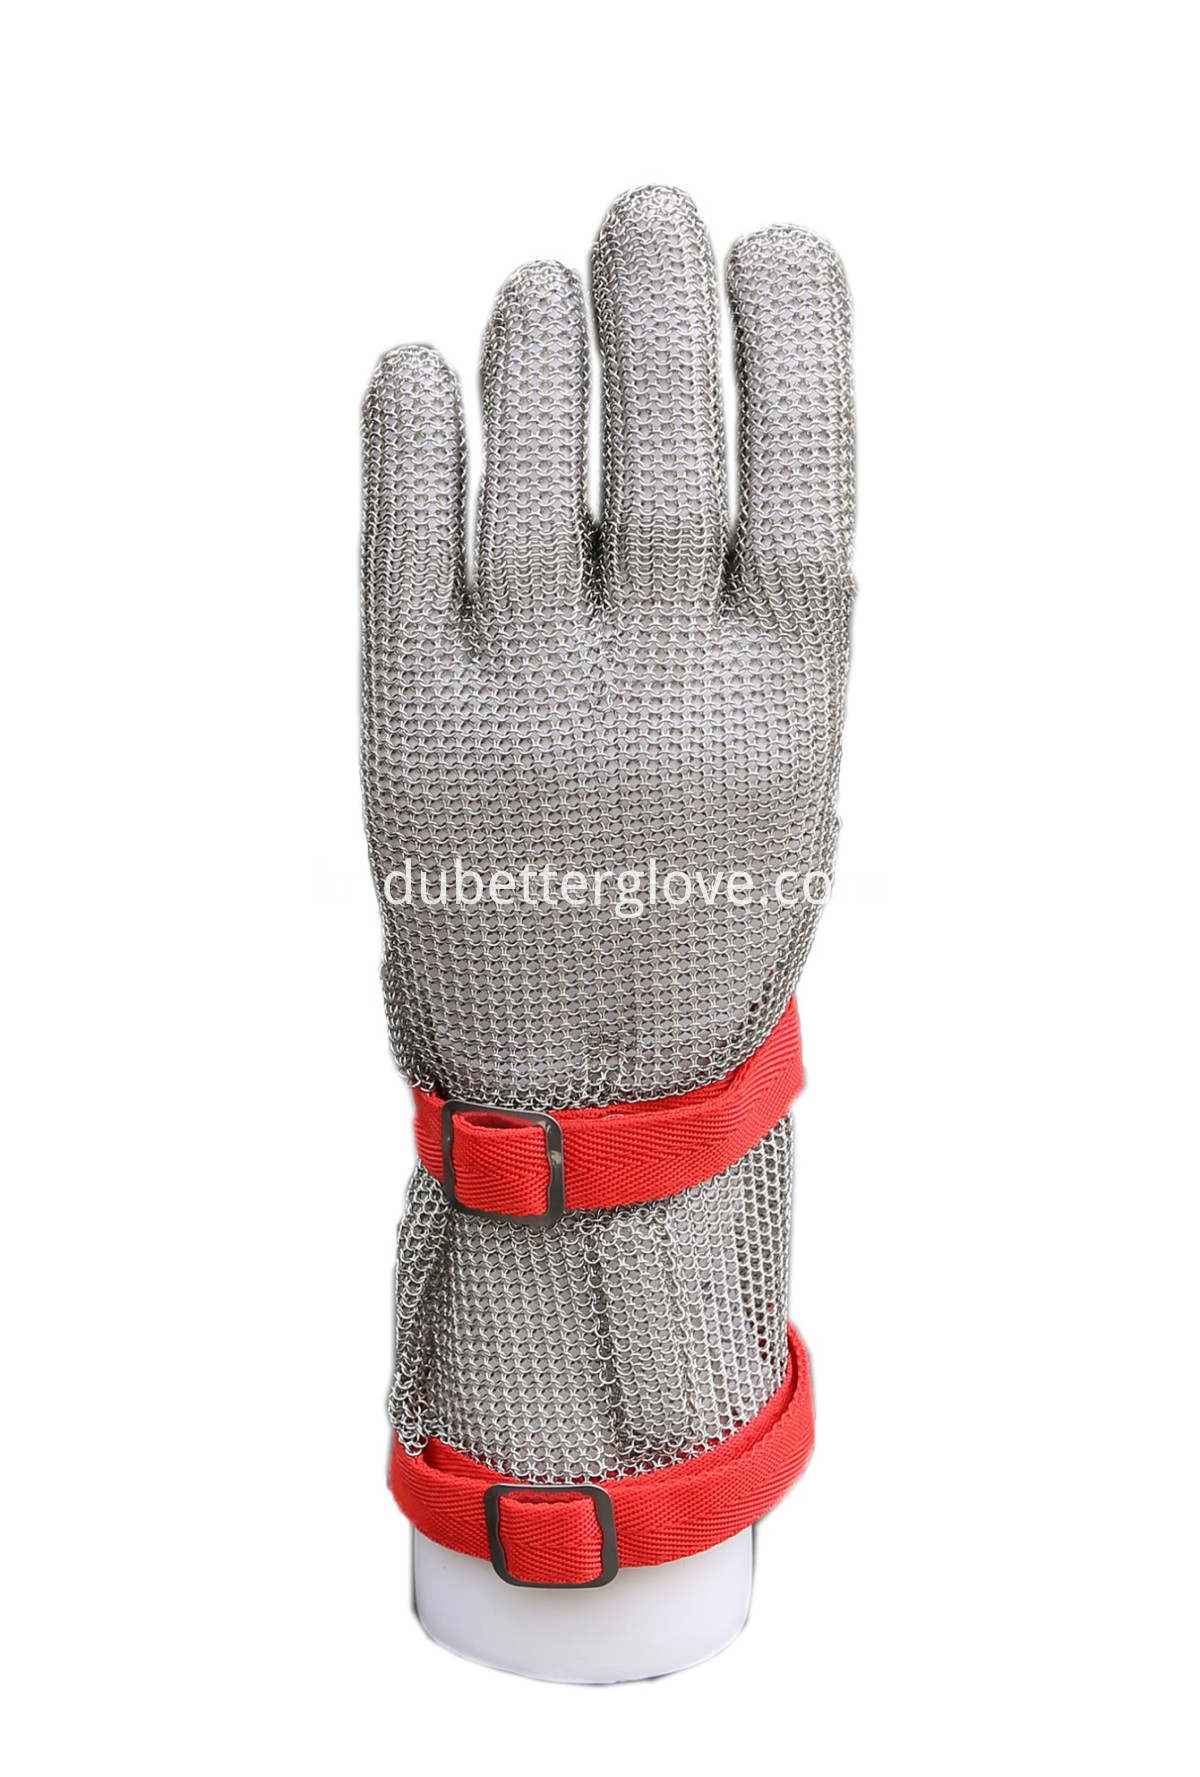 stainless steel gloves with long cuff